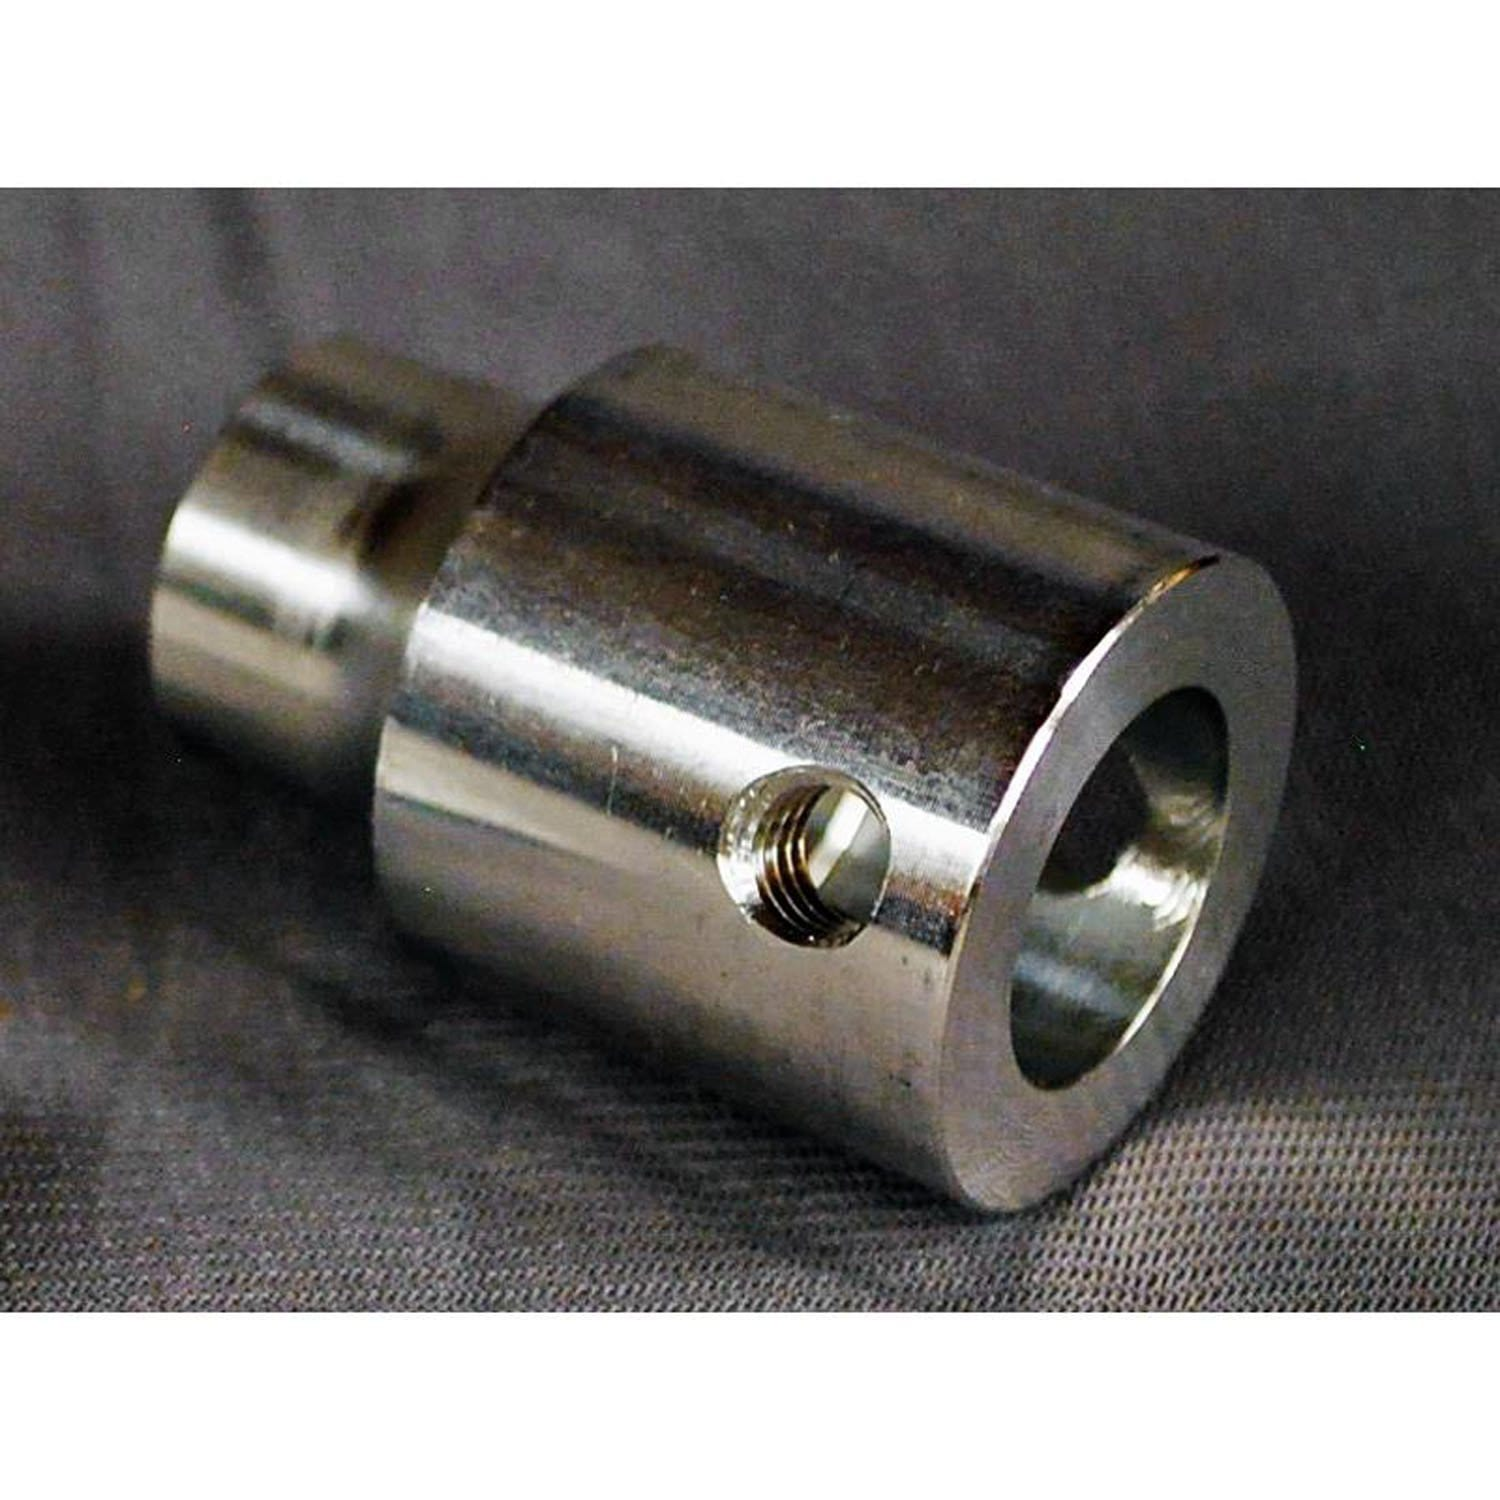 GSXR600/750 (06-09) Left Frame Slider Base (no bolts/puck) - Woodcraft Technologies - Motorcycle Parts